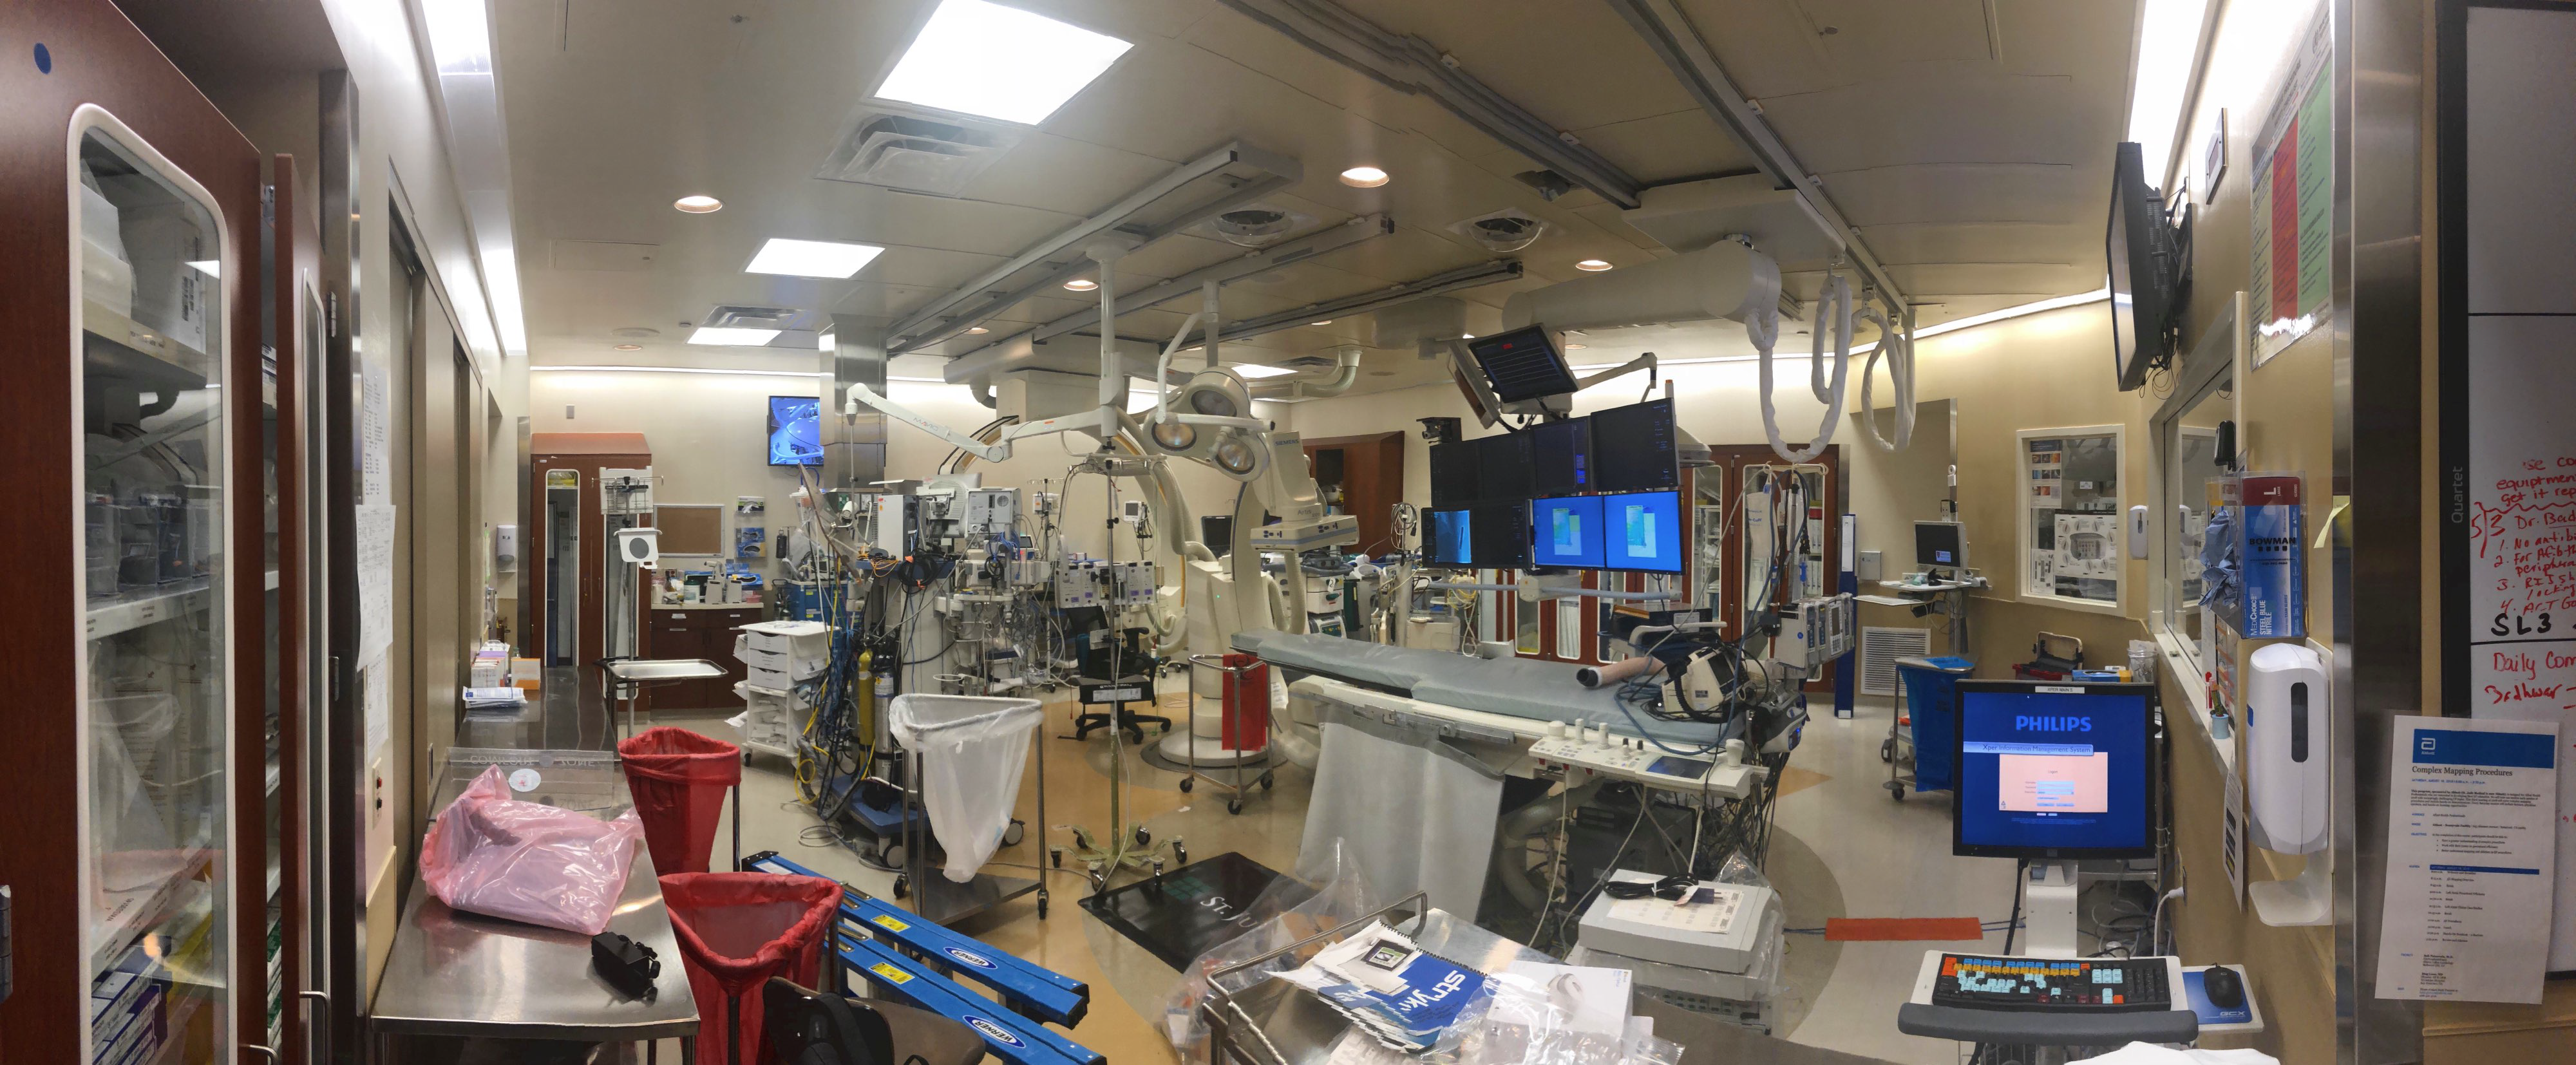 A Special OR Renovation at Stanford Hospital